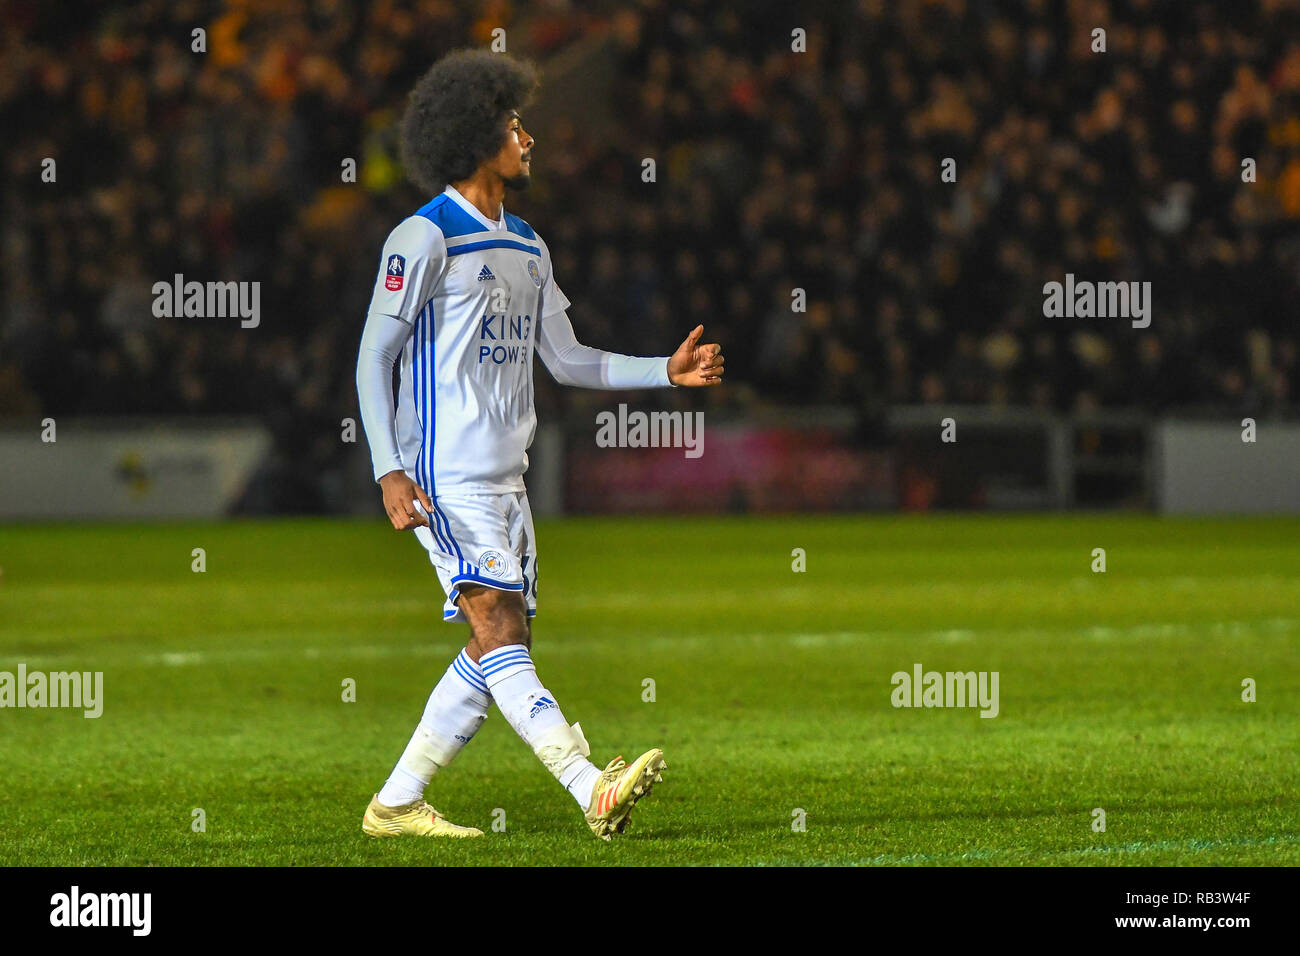 6th January 2019, Rodney Parade, Newport, Wales ; The Emirates FA Cup, 3rd Round, Newport County vs Leicester City : Hamza Choudhury (38) of Leicester City     Credit: Gareth Dalley/News Images    English Football League images are subject to DataCo Licence - Stock Image